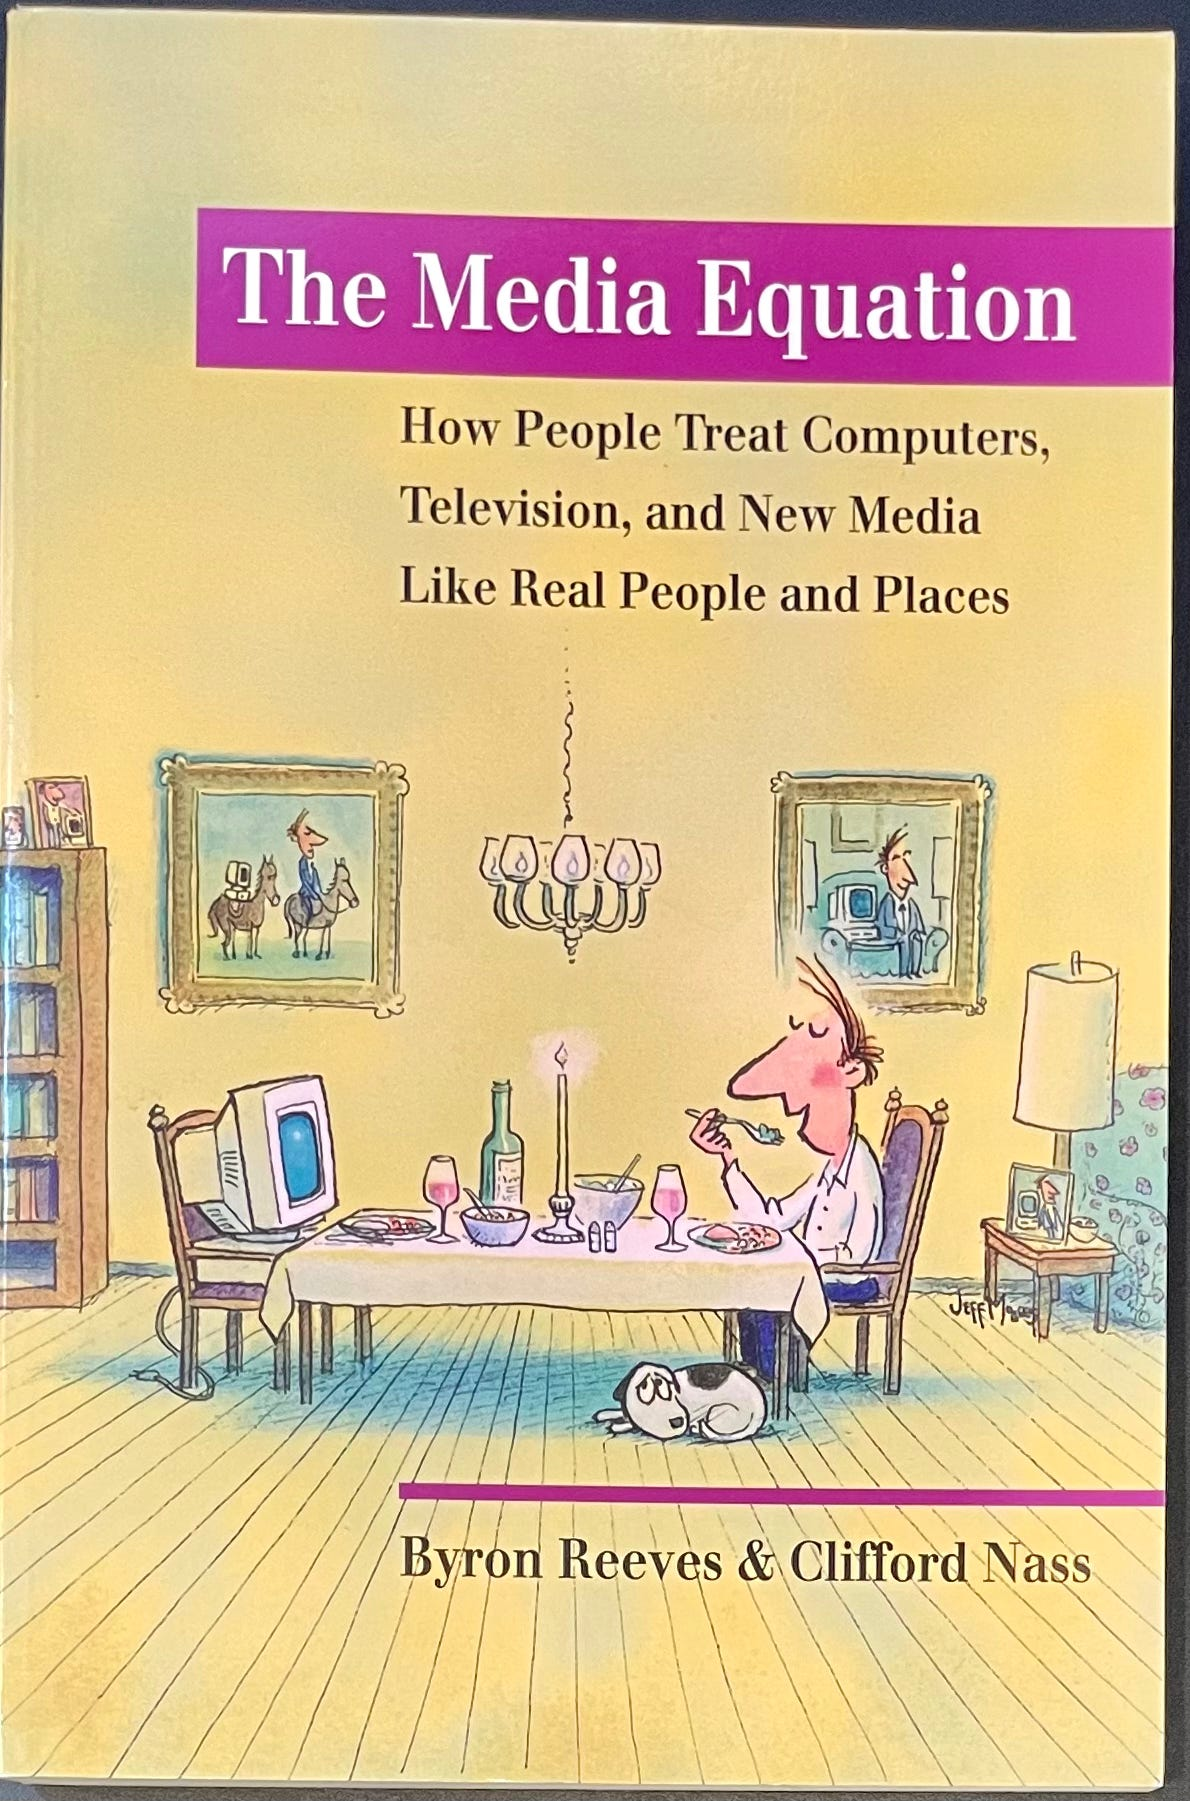 The Media Equation by Byron Reeves and Clifford Nass